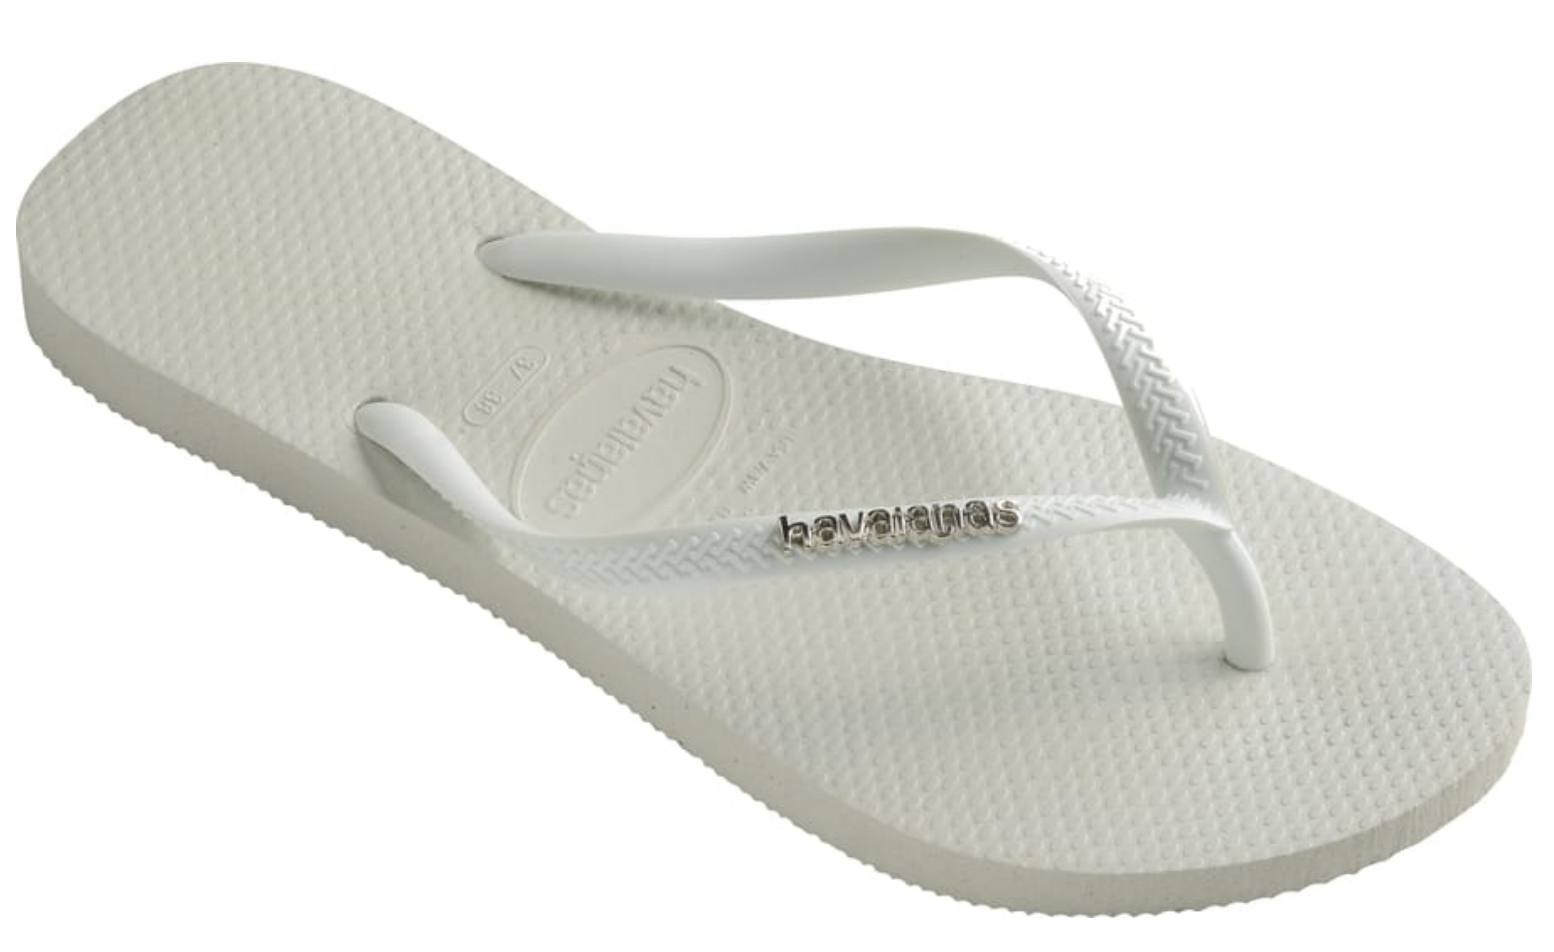 HAVAIANAS SLIM LOGO METALLIC in WHITE & SILVER-1